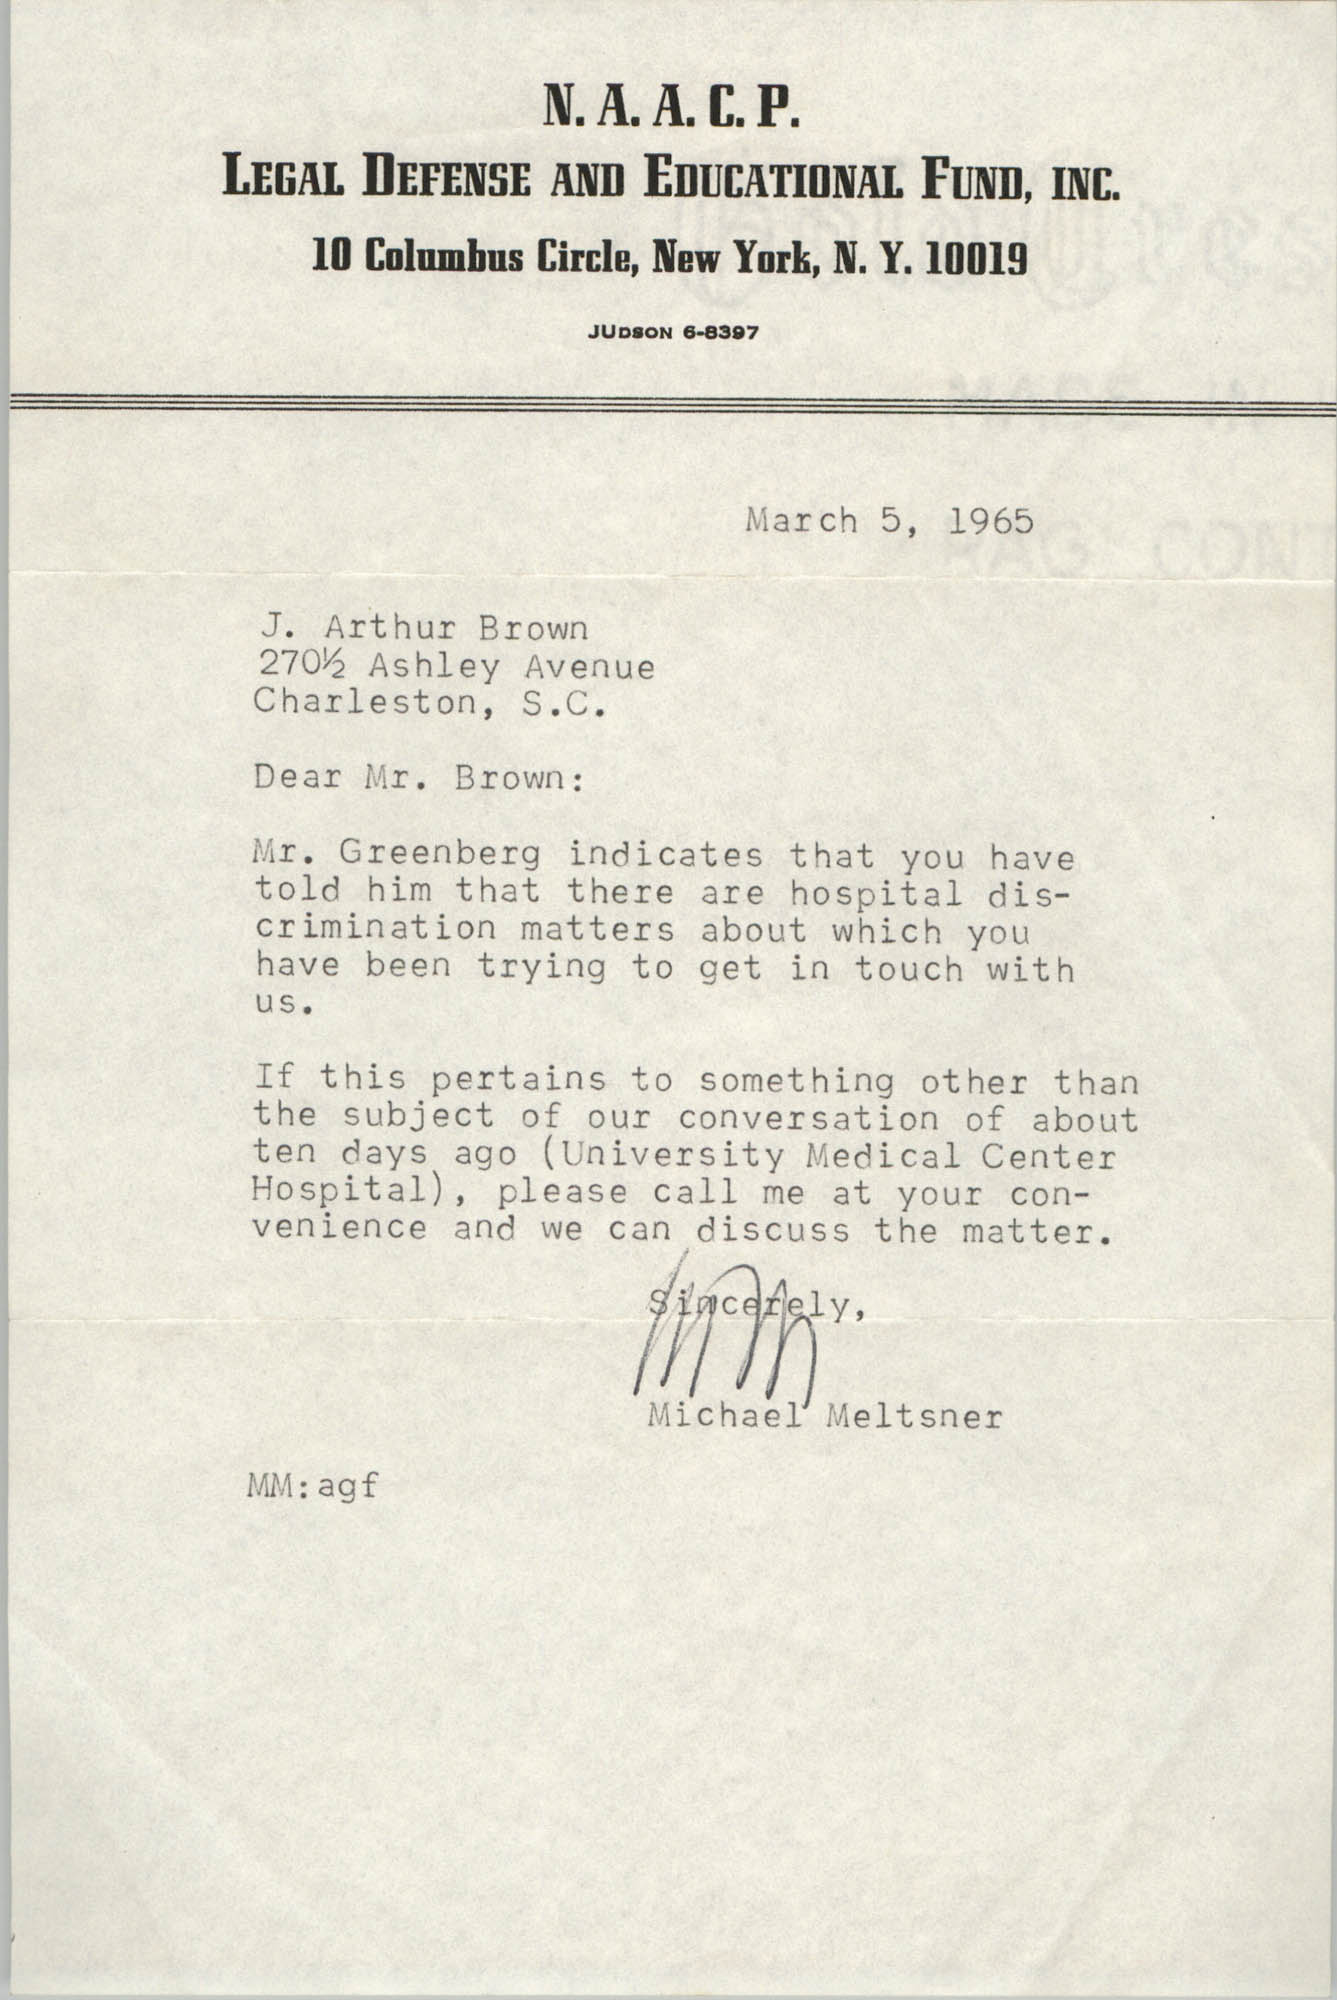 Letter from Michael Meltsner to J. Arthur Brown, March 5, 1965